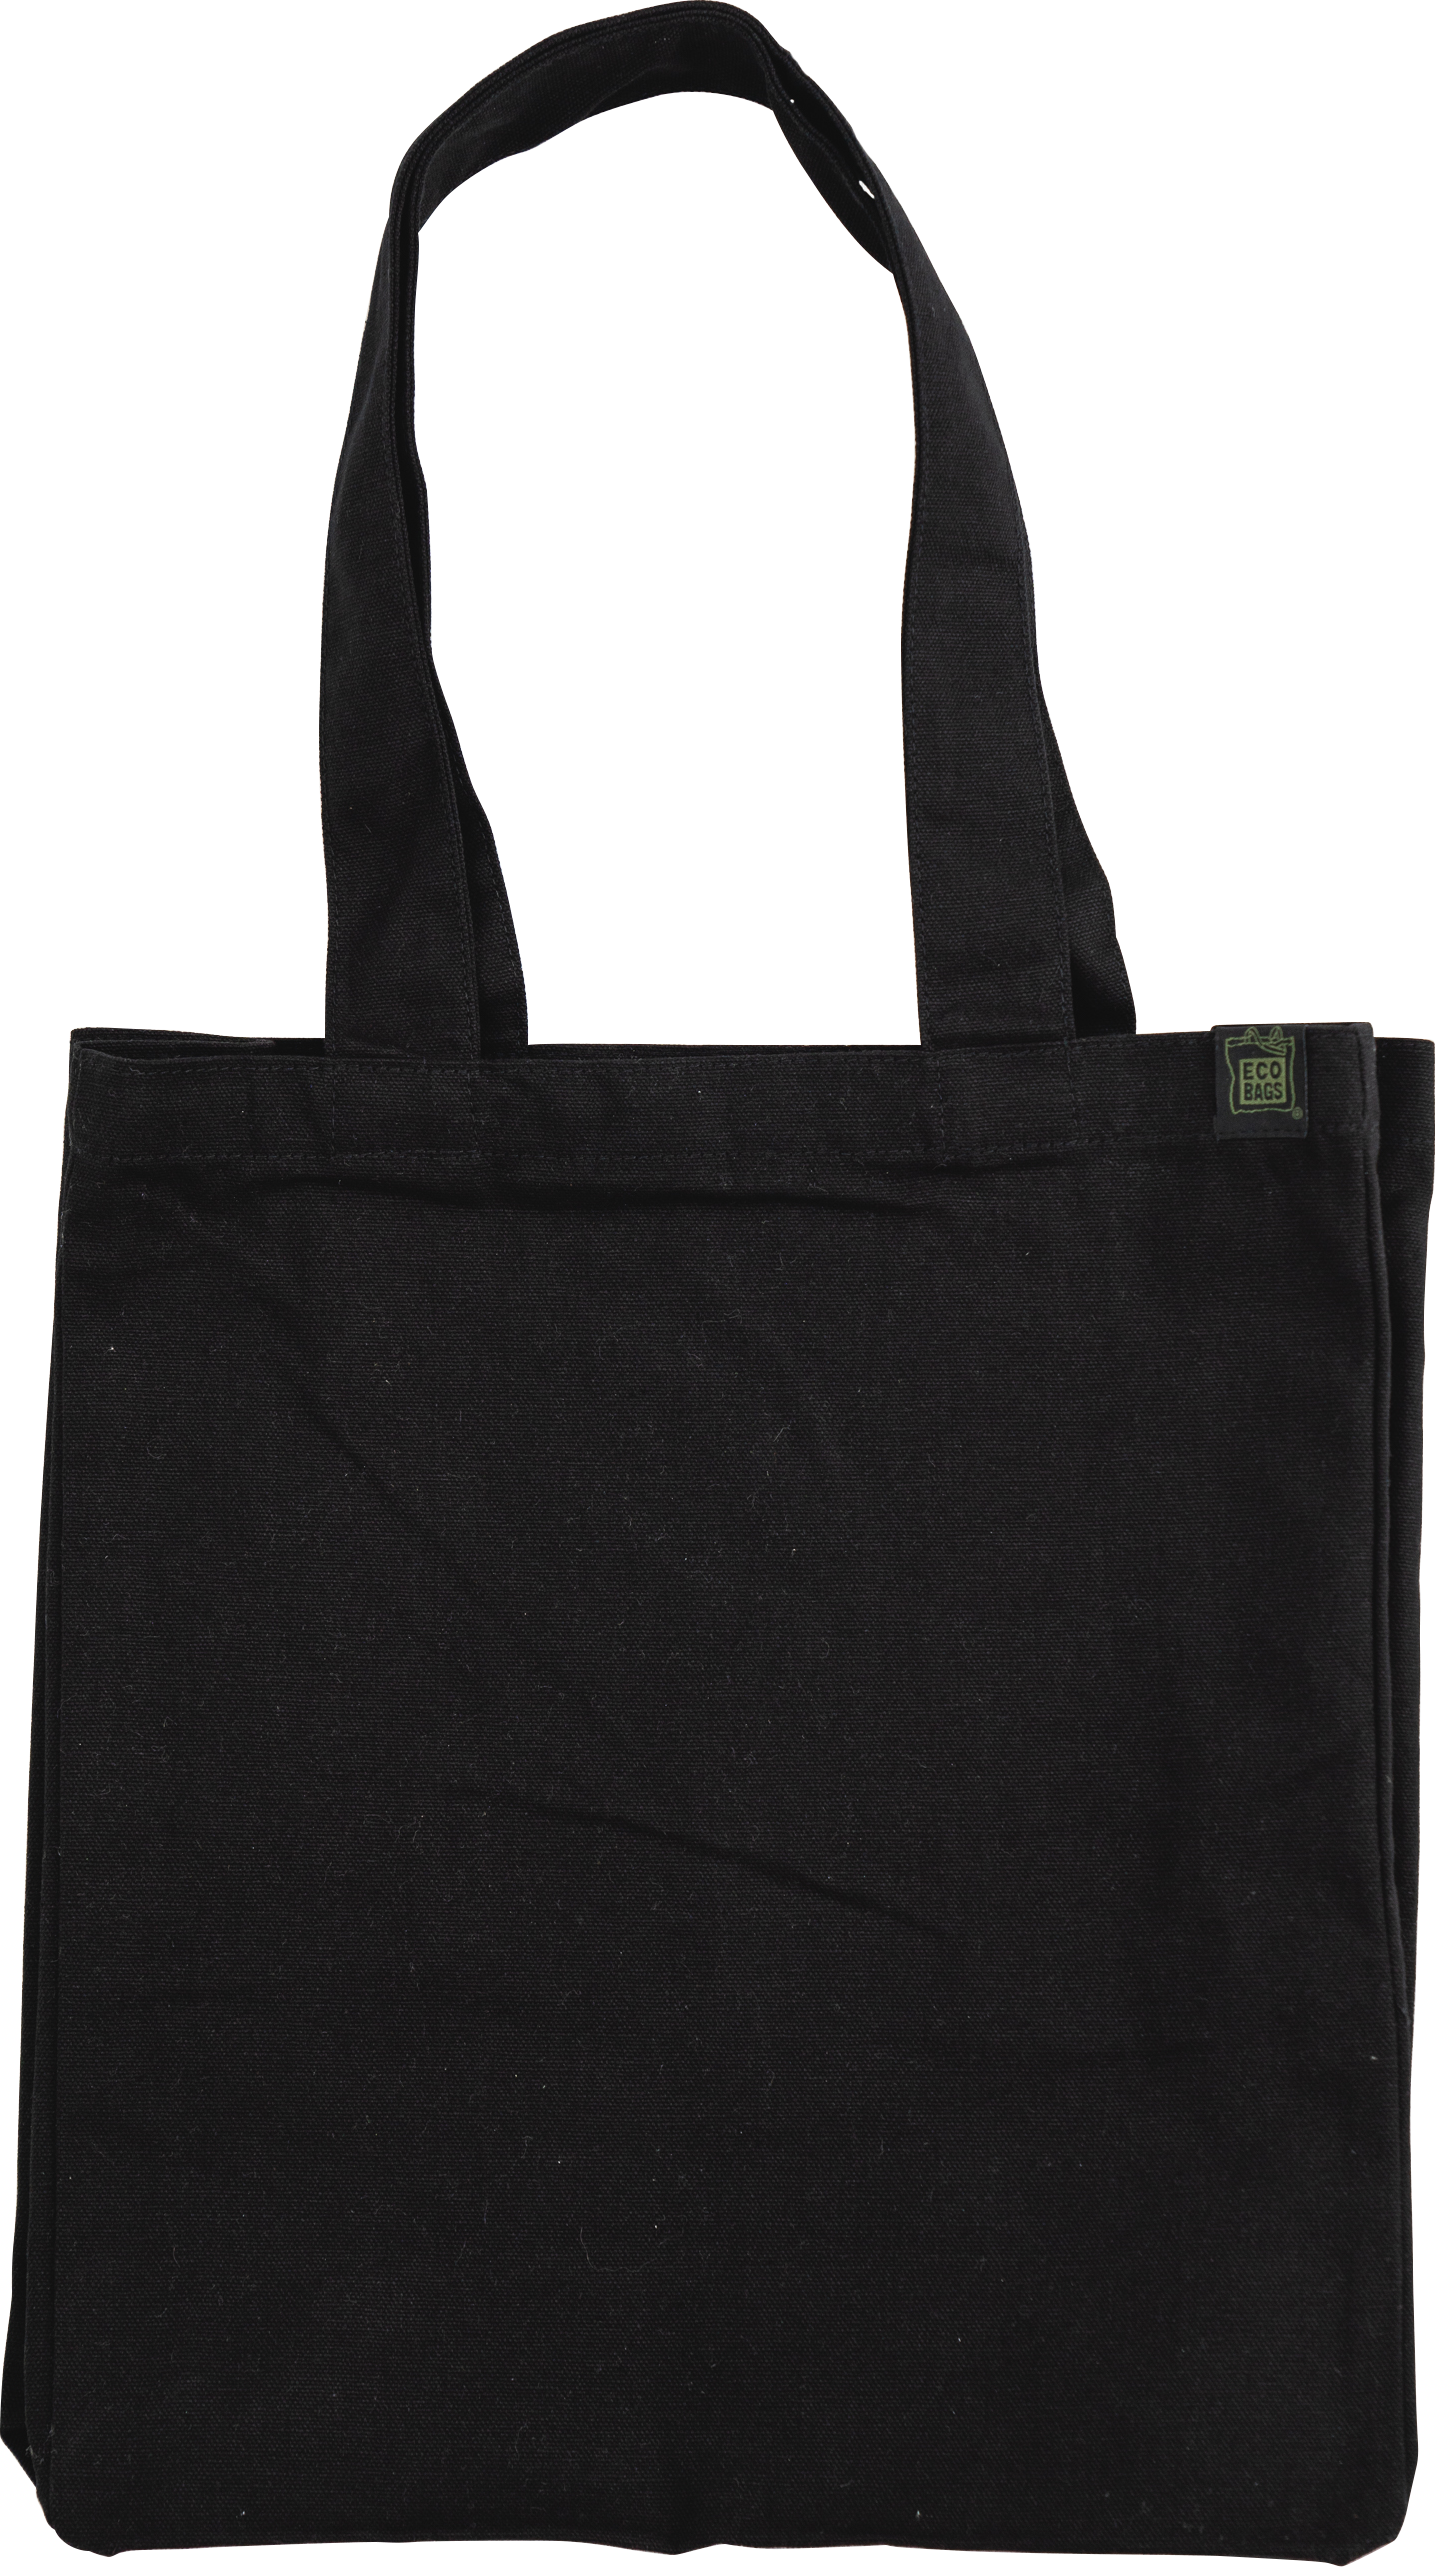 ECOBAGS-CANRB-204-9705Nb.jpg